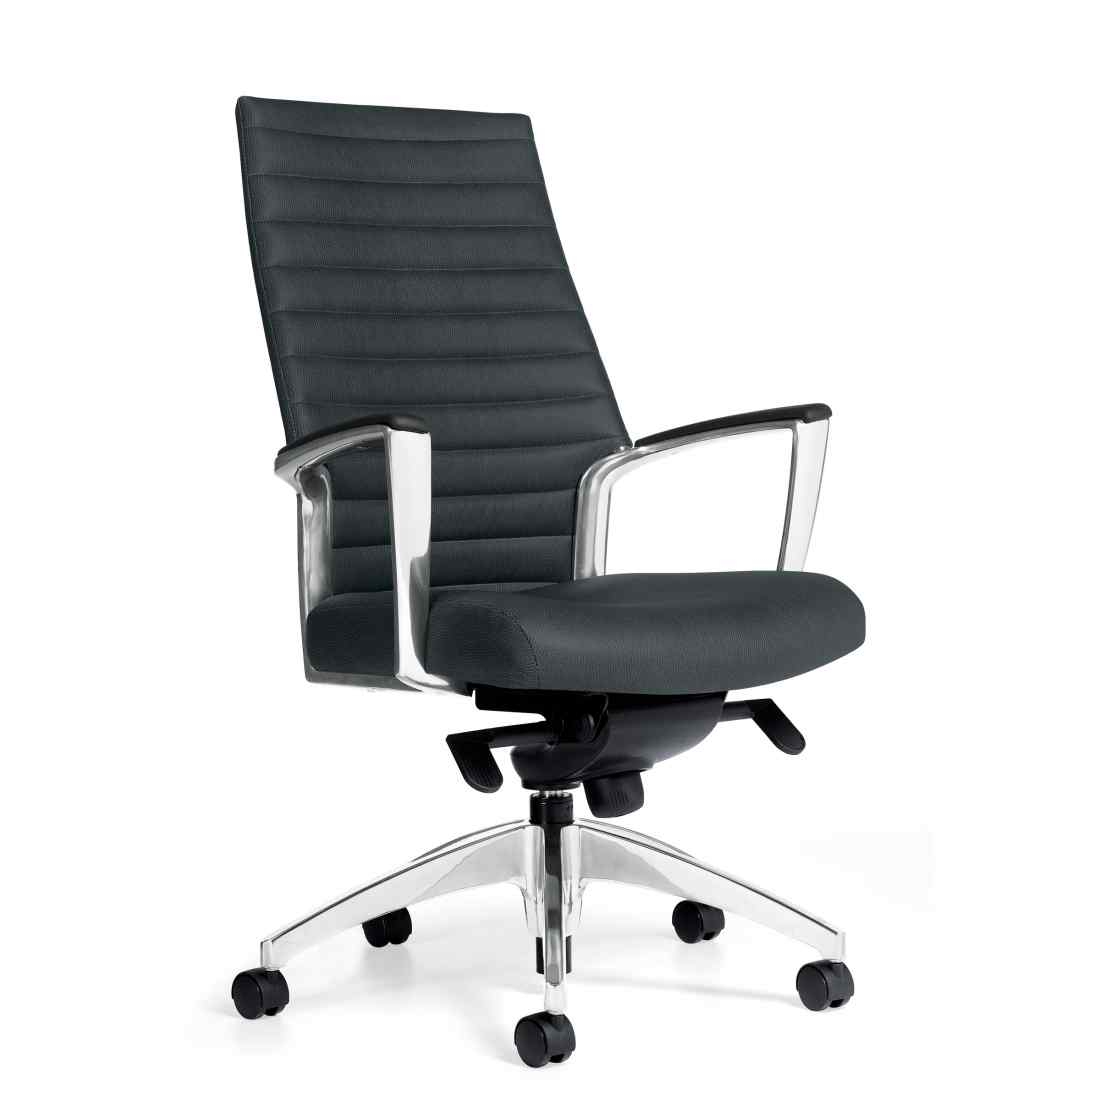 Express Premium Comfort Mesh Chair Office Chair Repair Houston Tx Welcome To Www